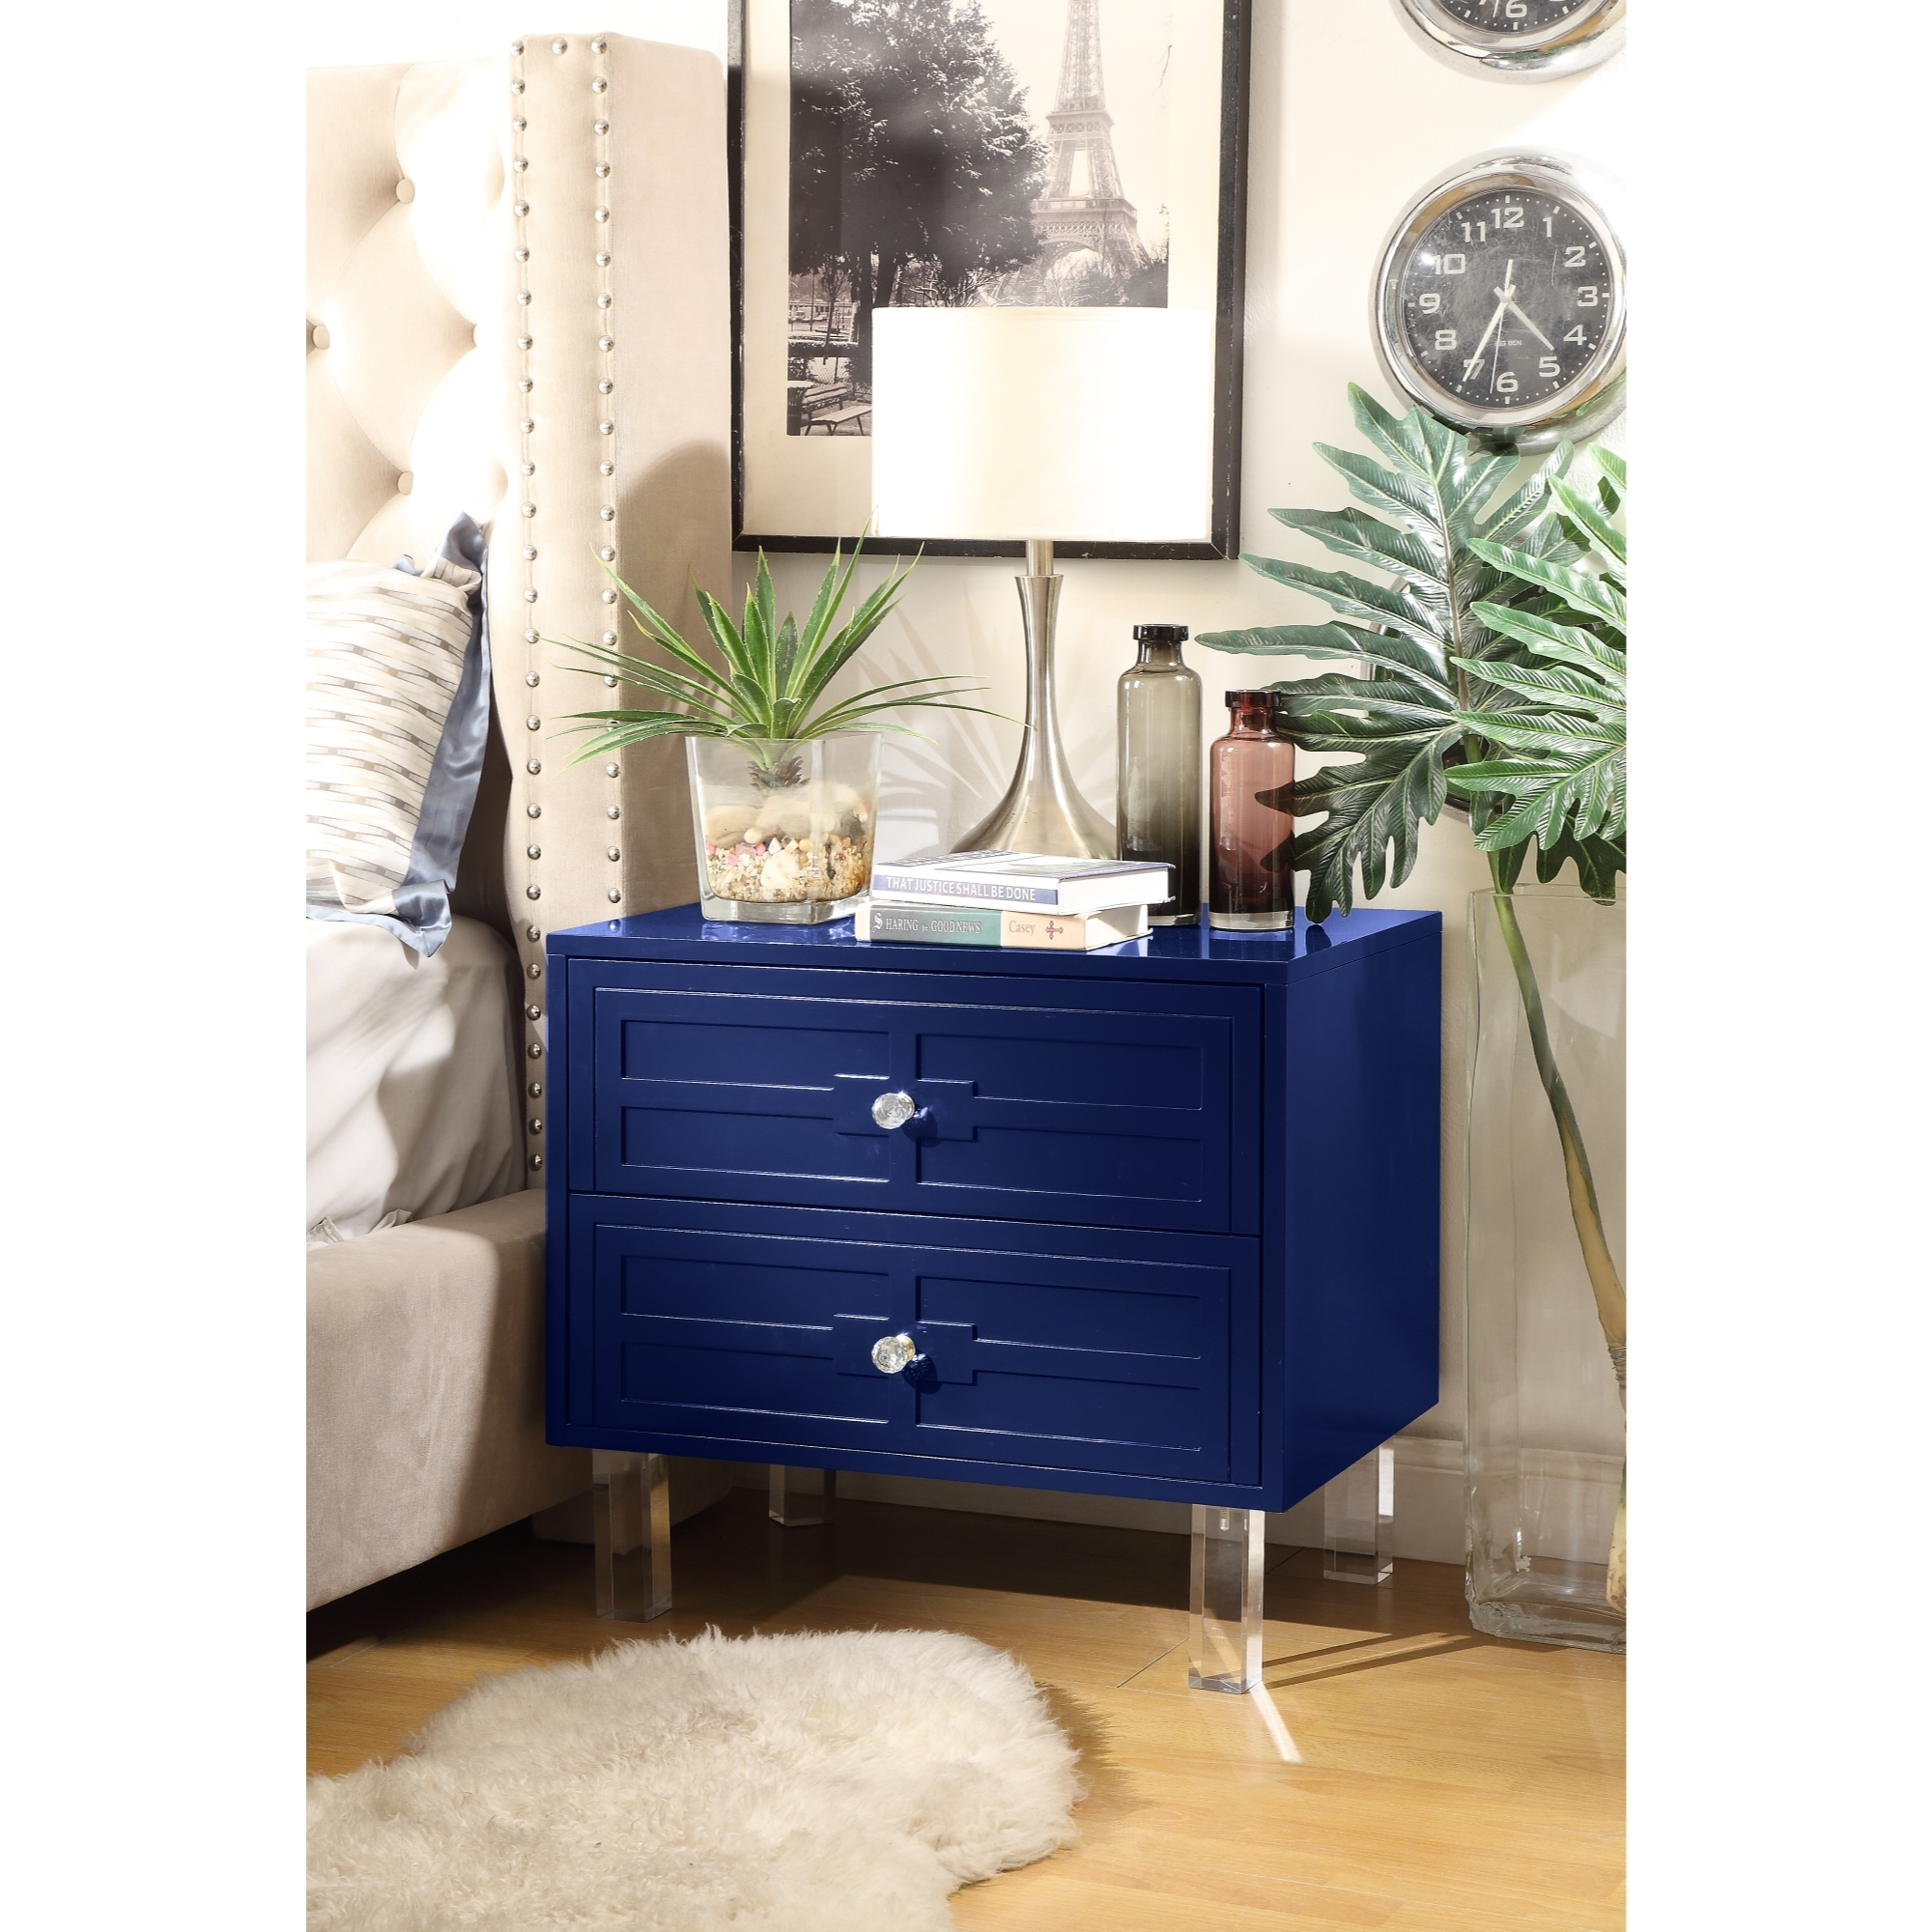 Maya MDF Wood Lacquer - 2 Drawers   Finish Lucite Leg   Side Table   Nightstand   Modern & Functional by Inspired Home - Navy